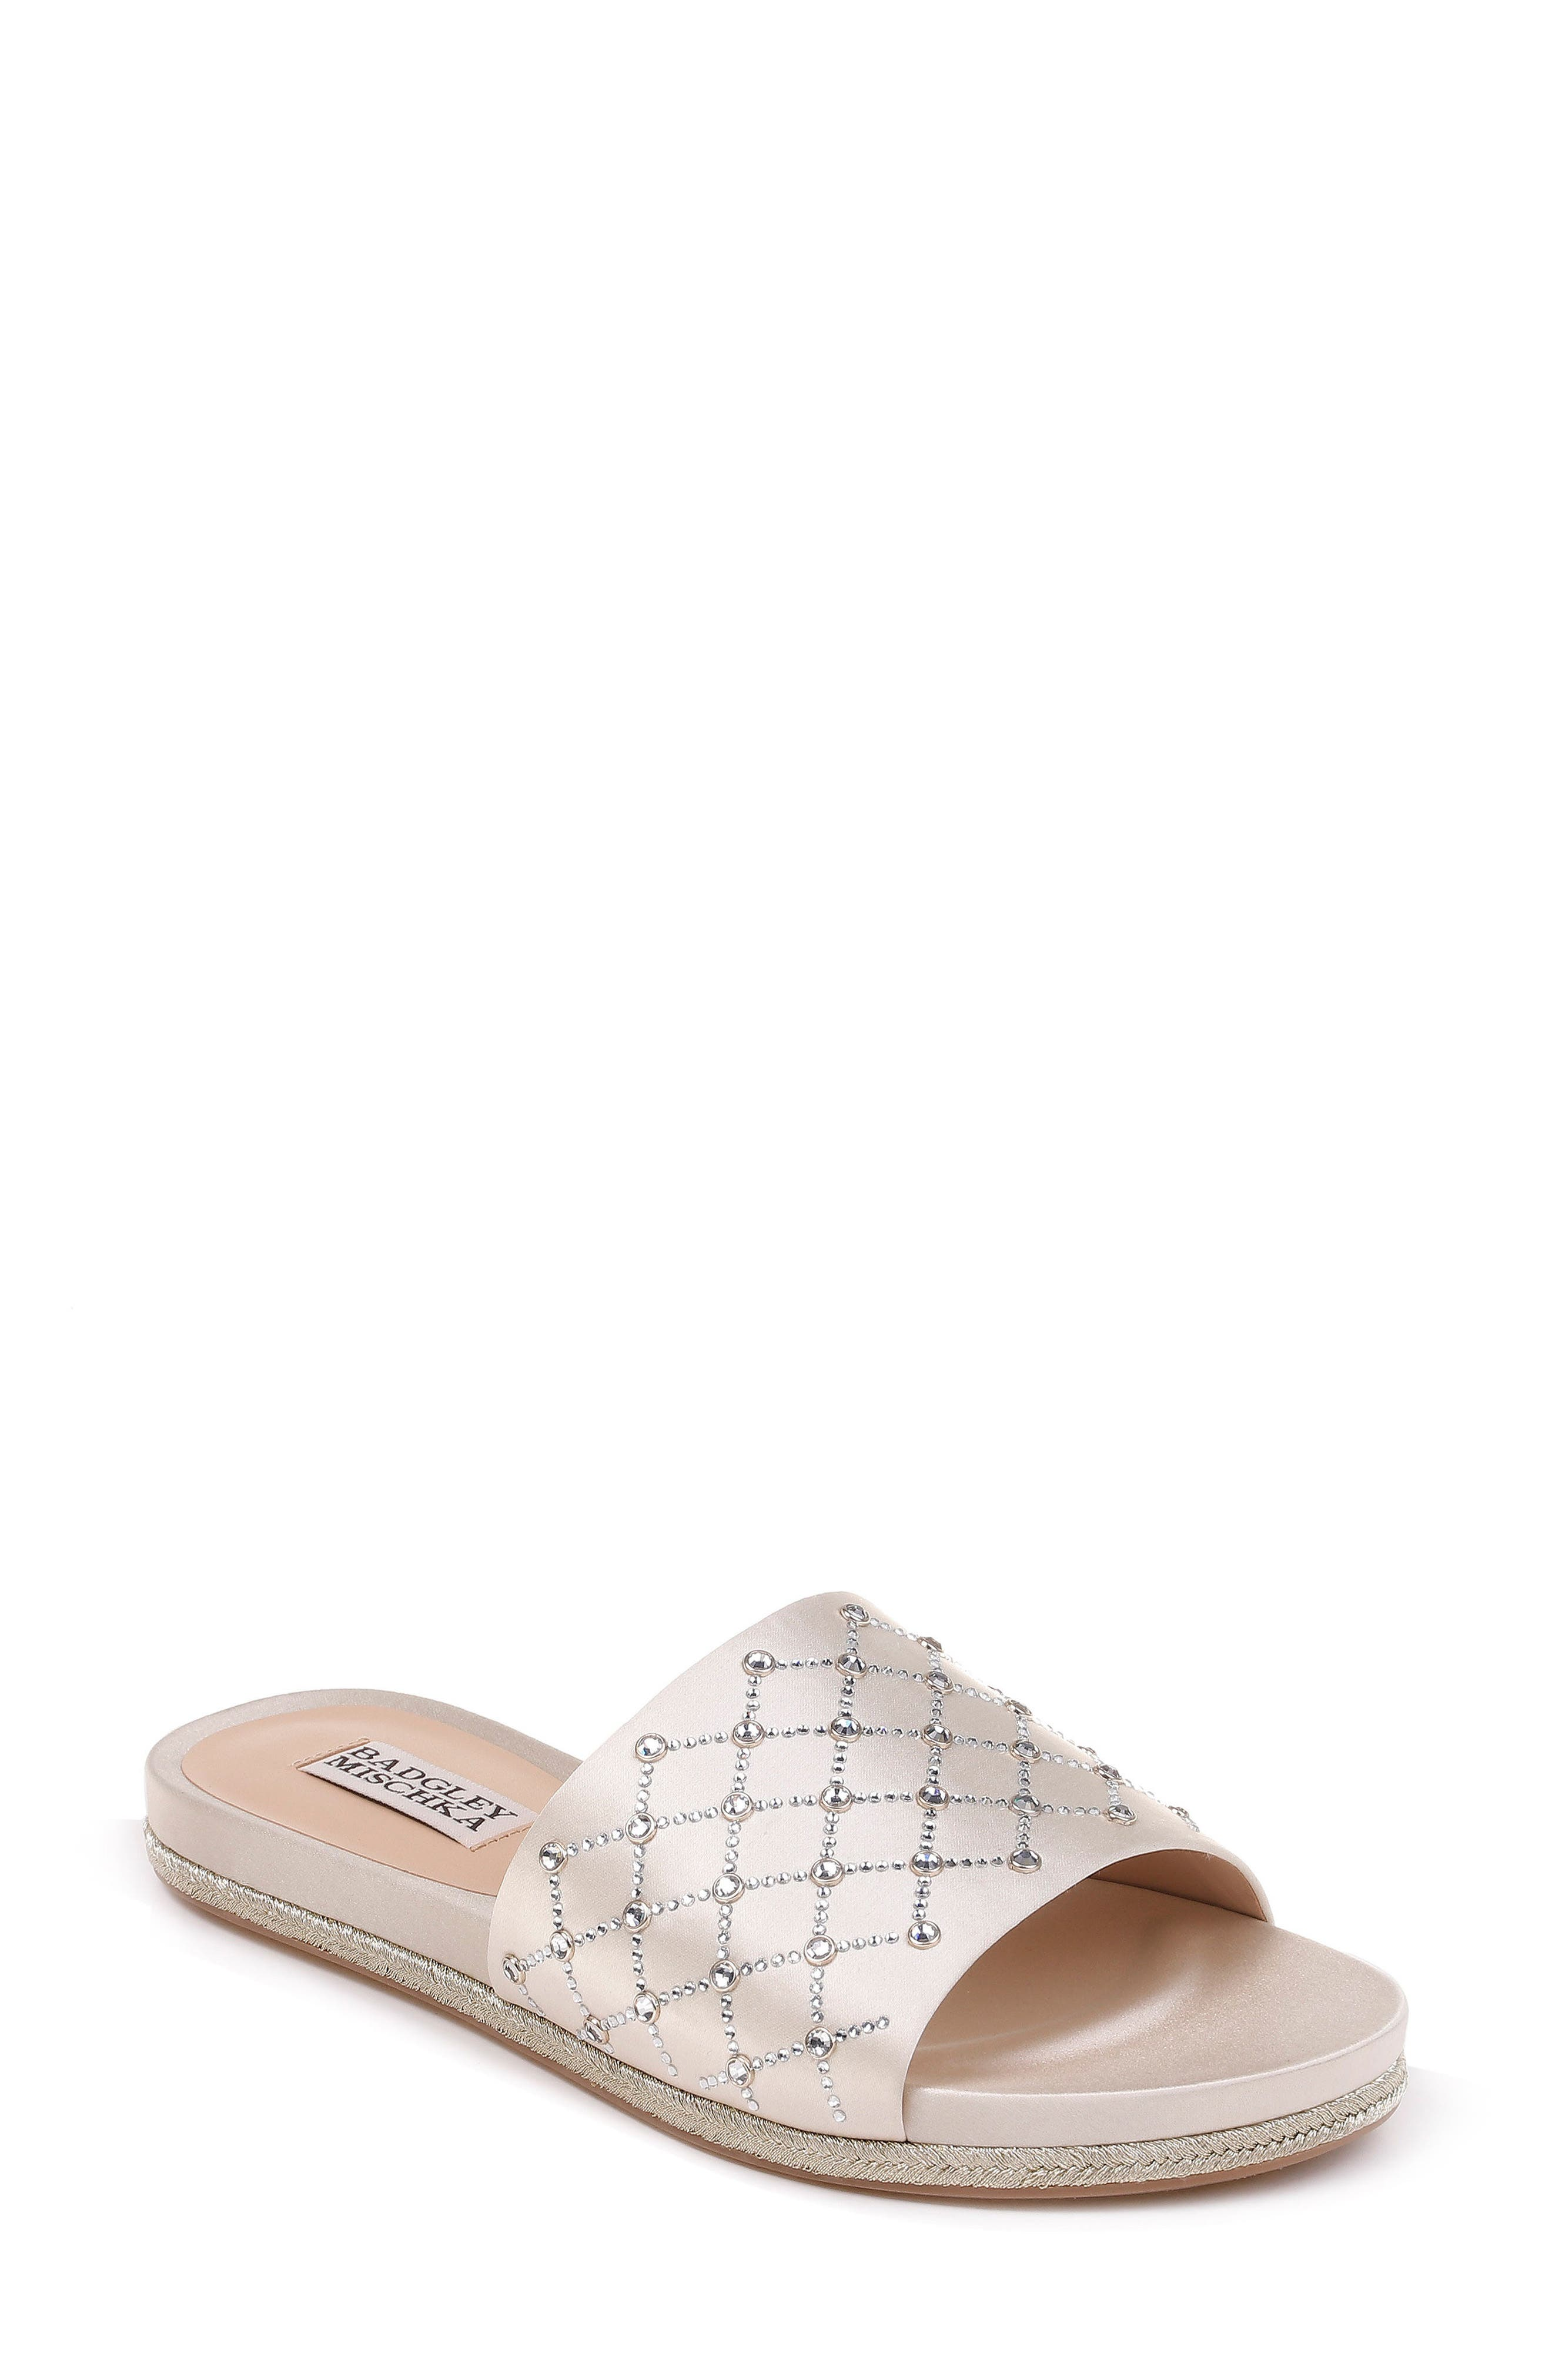 Badgley Mischka Shayna Slide (Women)